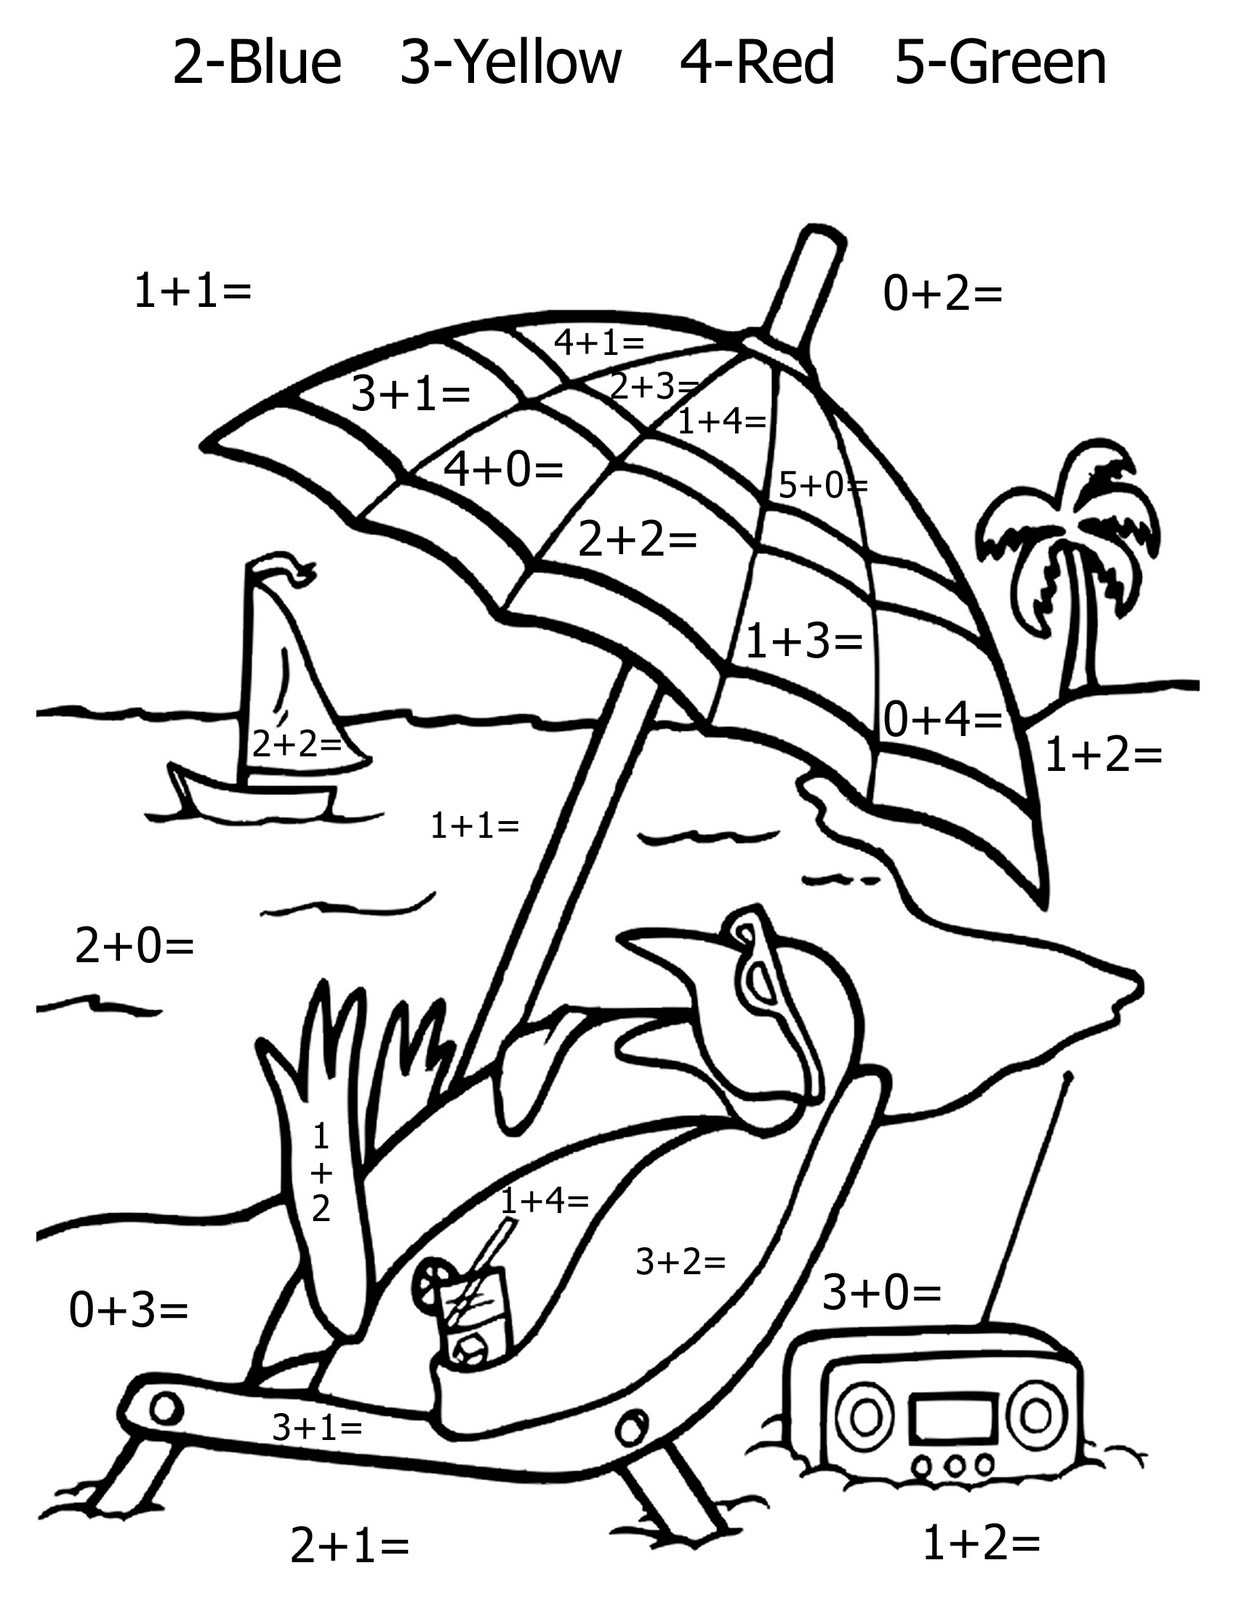 Coloring Sheets For Kids 10  Math Coloring Pages Best Coloring Pages For Kids